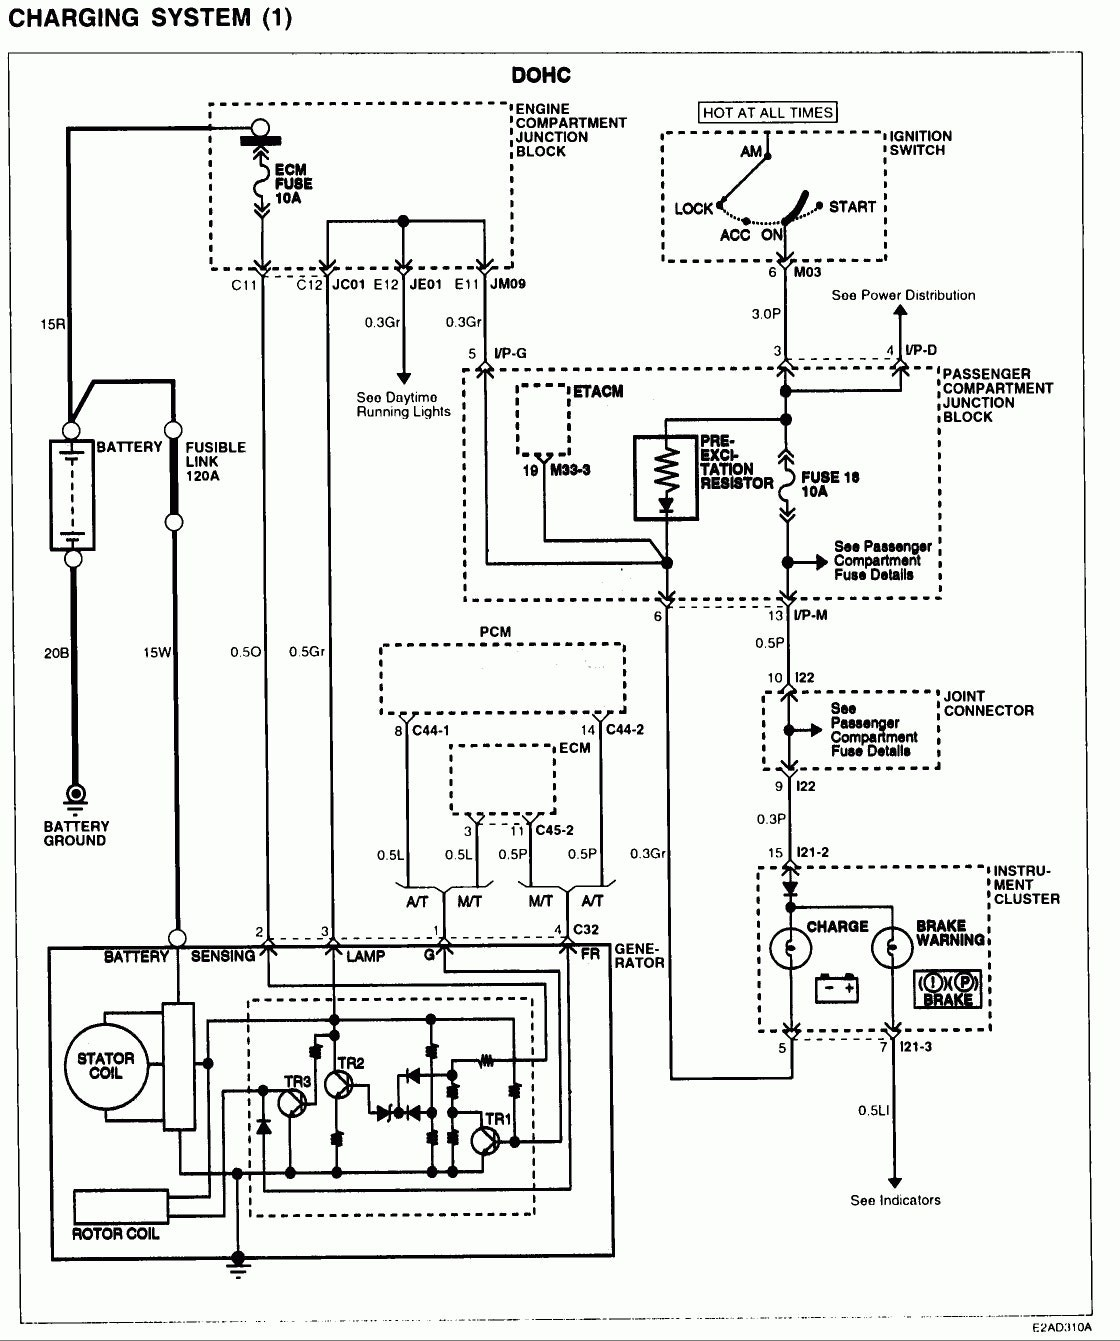 Wire Diagram 04 Hyundai Santa Fe Ets • Wiring Diagram For Free